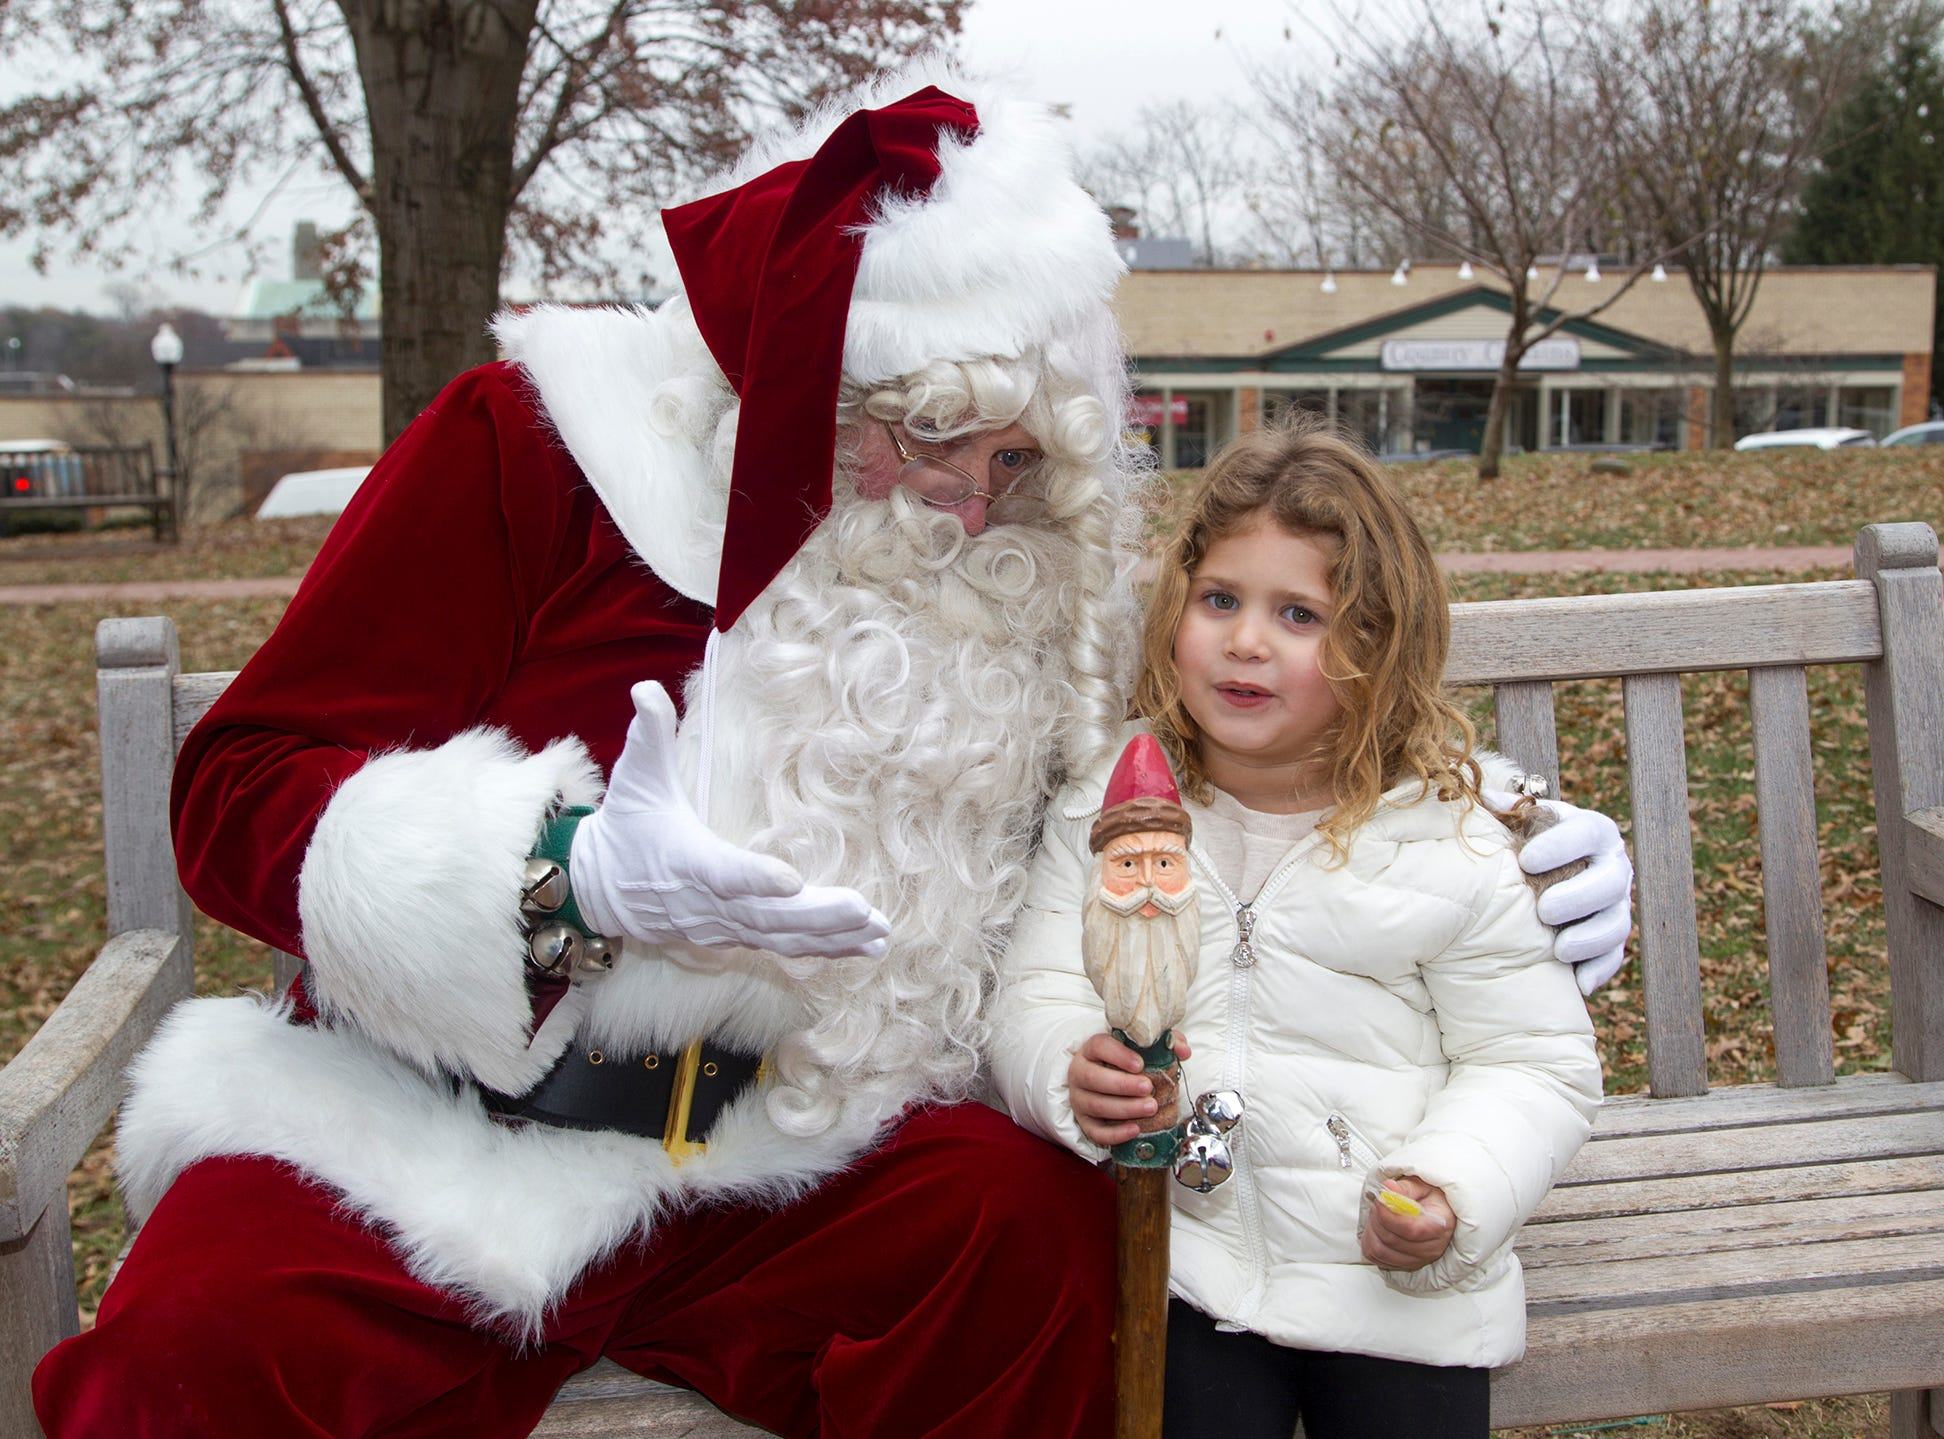 Olivia and Santa. The Ridgewood Guild sponsors Winter Fest at Van Neste Park in Ridgewood. 11/24/2018